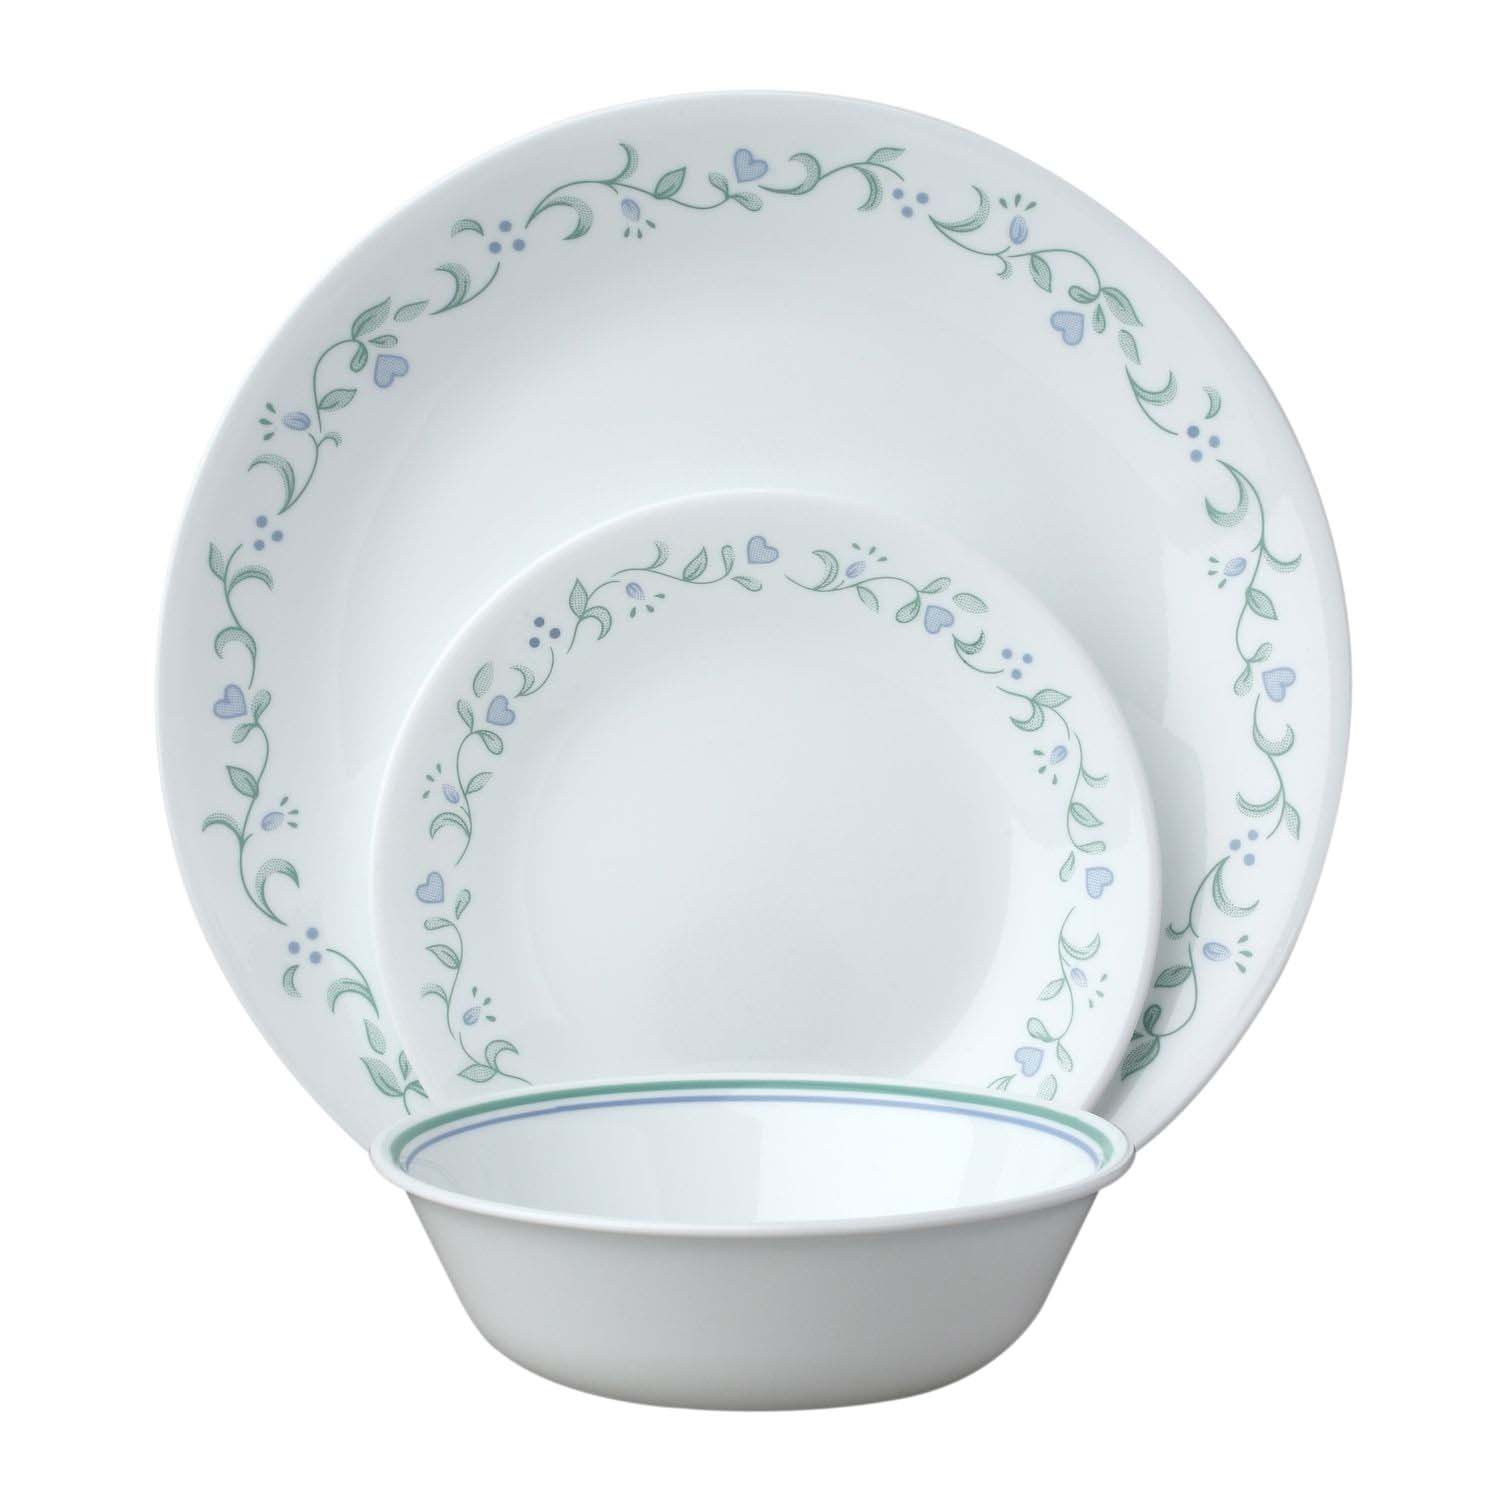 Corelle 18-Piece Vitrelle Glass Country Cottage Chip and Break Resistant Dinner Set Service for 6 Green/ Blue Amazon.co.uk Kitchen \u0026 Home  sc 1 st  Amazon UK & Corelle 18-Piece Vitrelle Glass Country Cottage Chip and Break ...